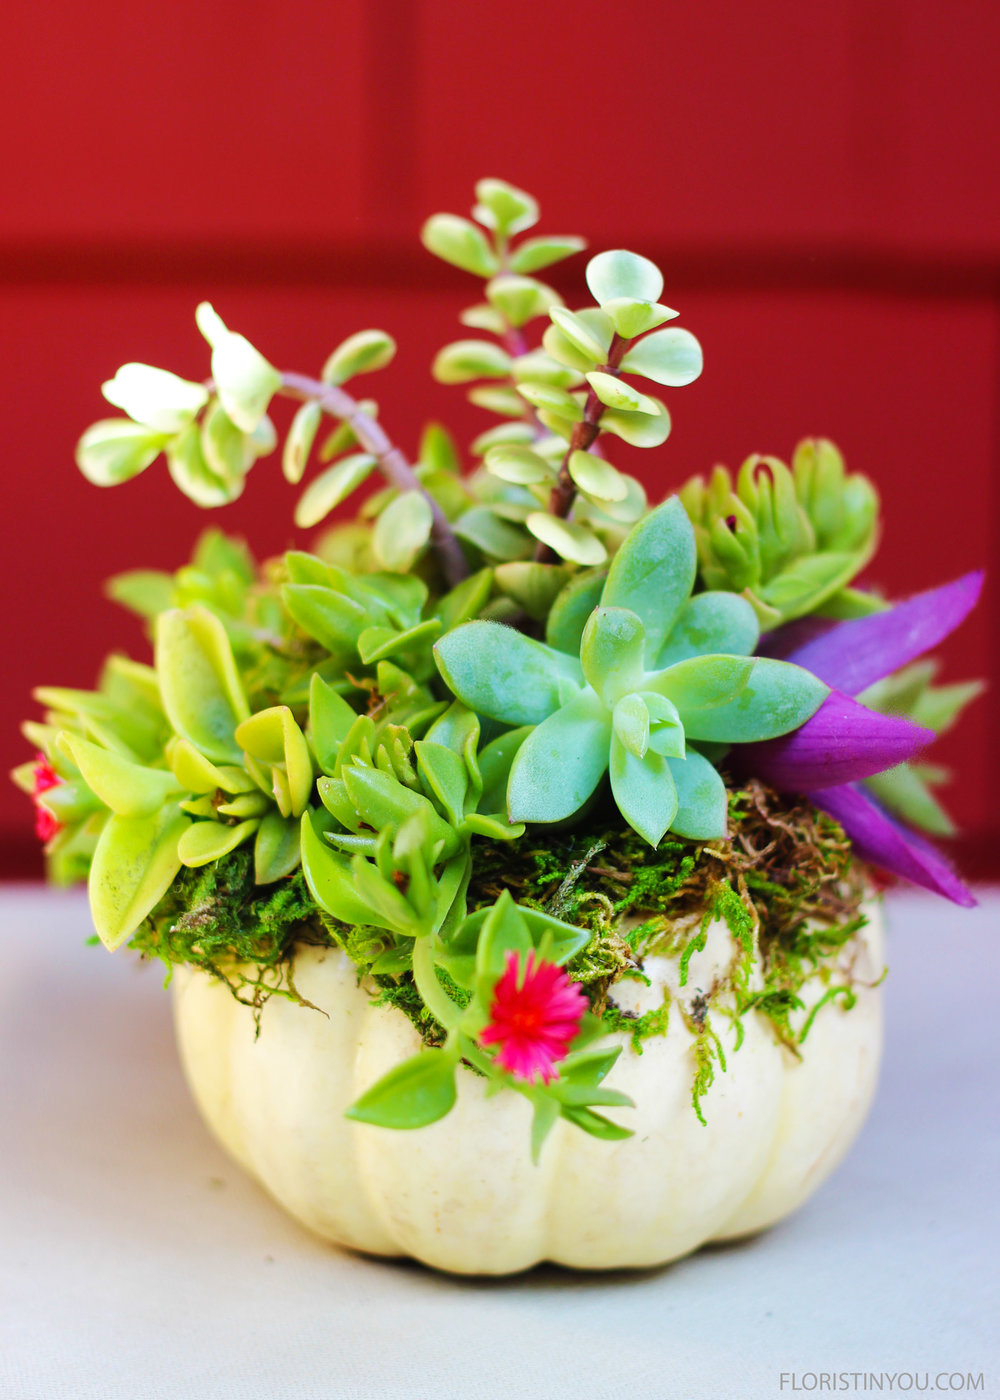 You are done with this cute little succulent topped pumpkin.  This will add some fun to your holiday table.  Enjoy!